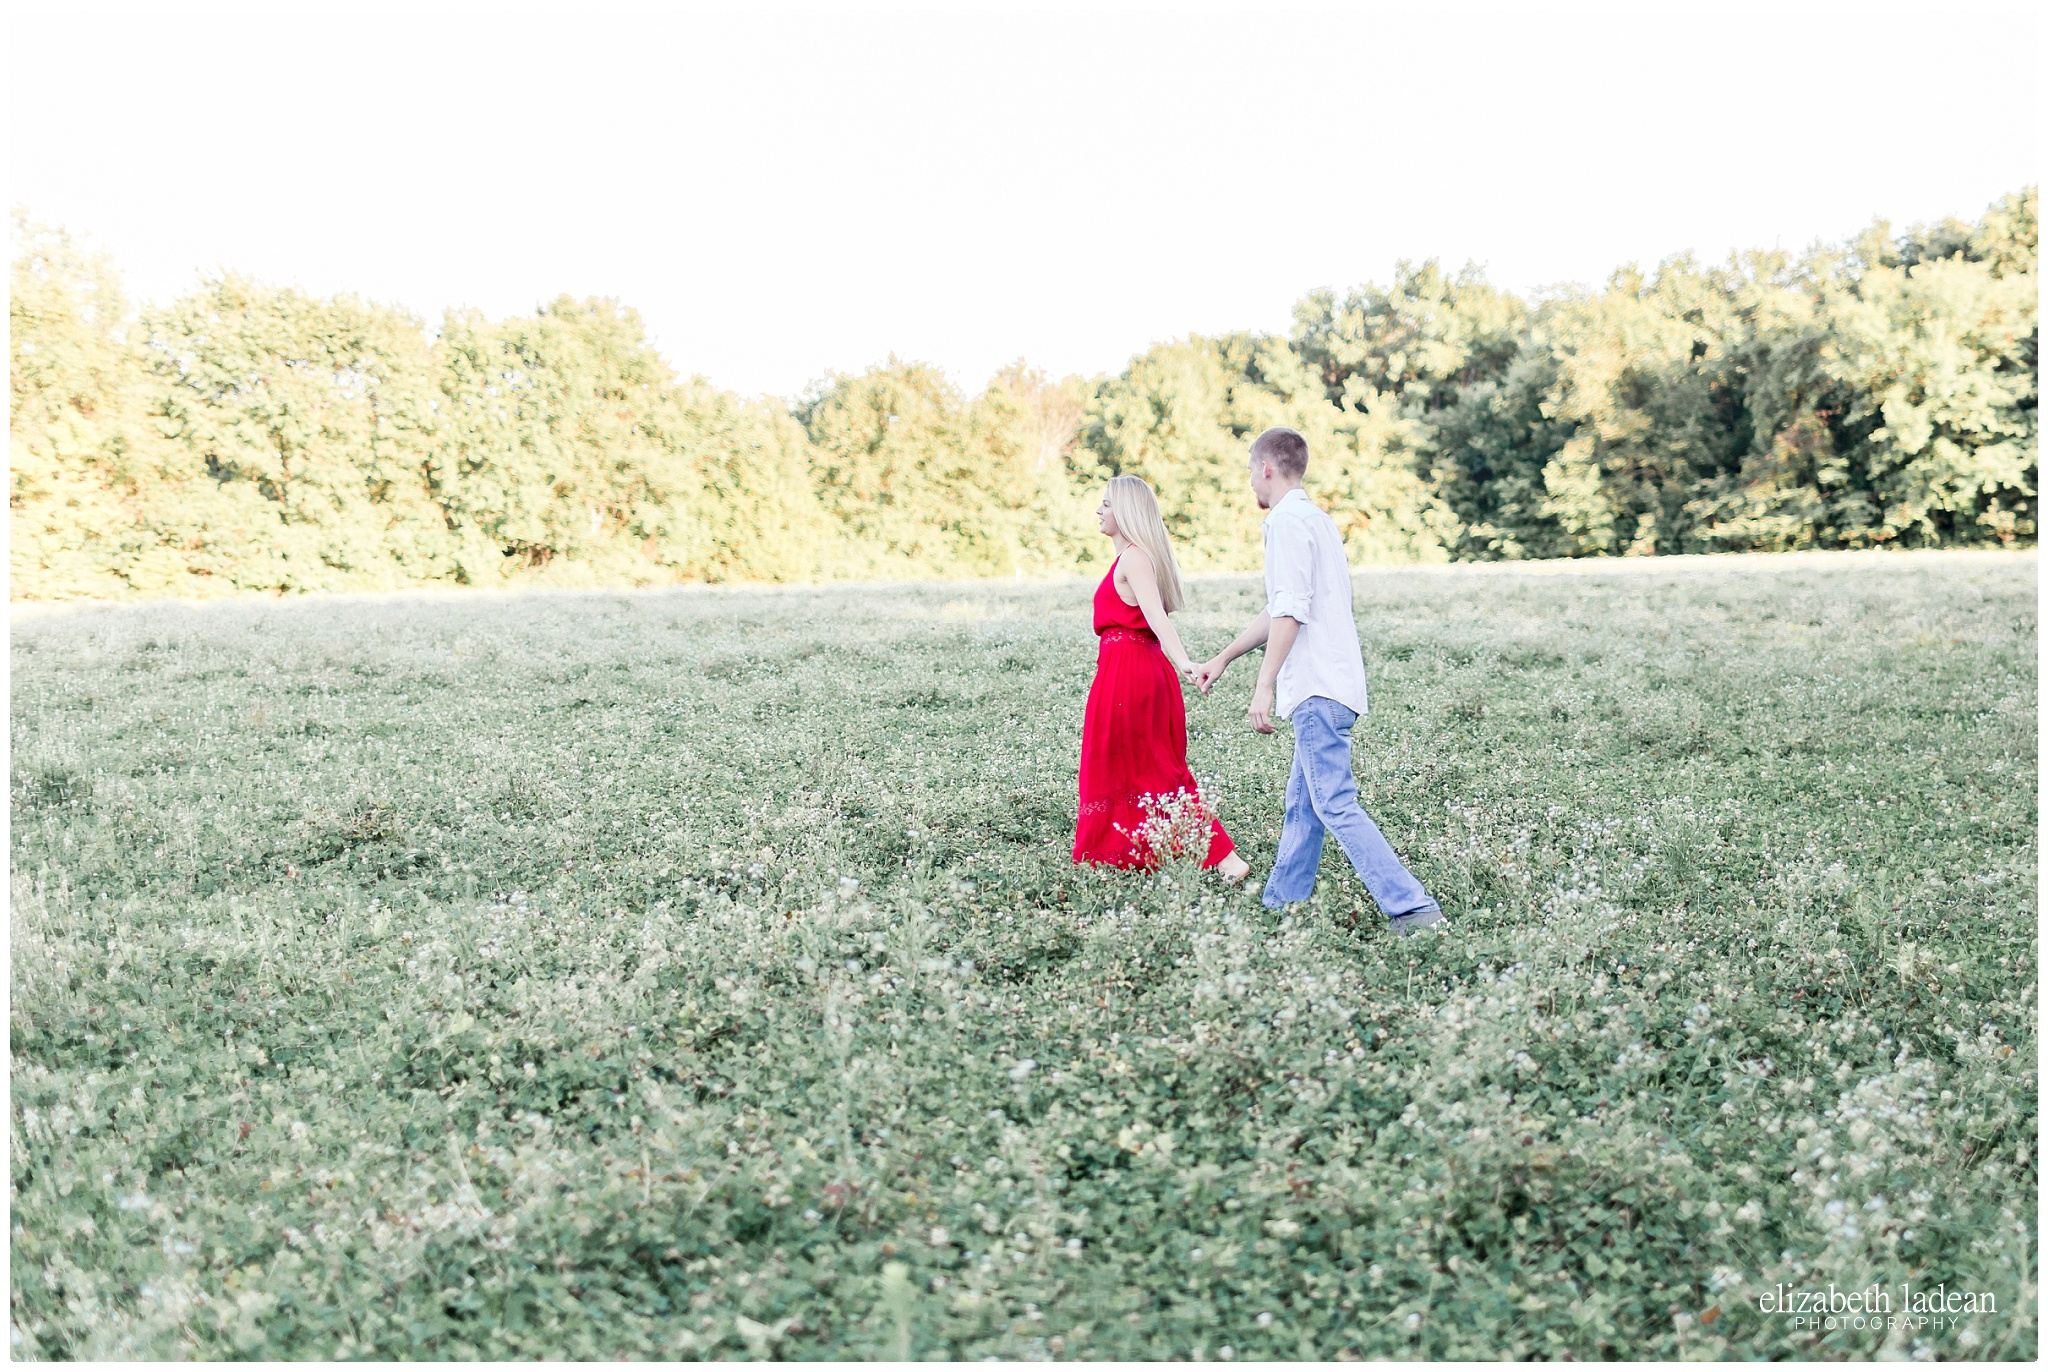 Kansas-City-Engagement-Photography-Burr-Oak-Woods-S+B2017-Elizabeth-Ladean-Photography-photo_1896.jpg